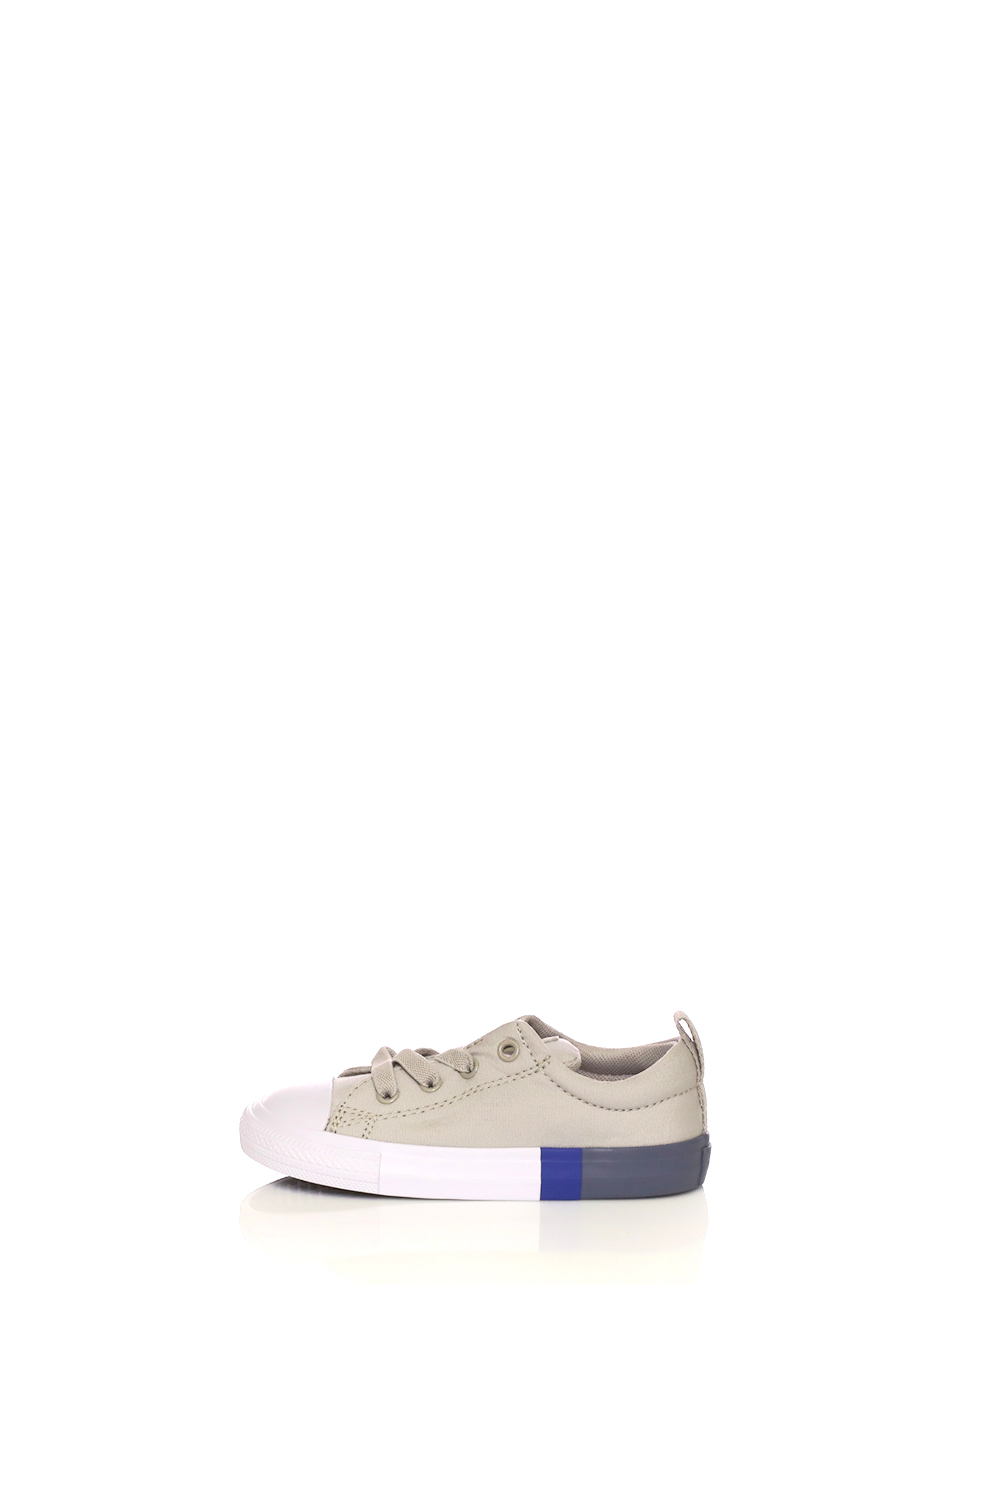 -49% Collective Online CONVERSE – Βρεφικά sneakers Converse Chuck Taylor  All Star Street S μπεζ f7cb051eedb